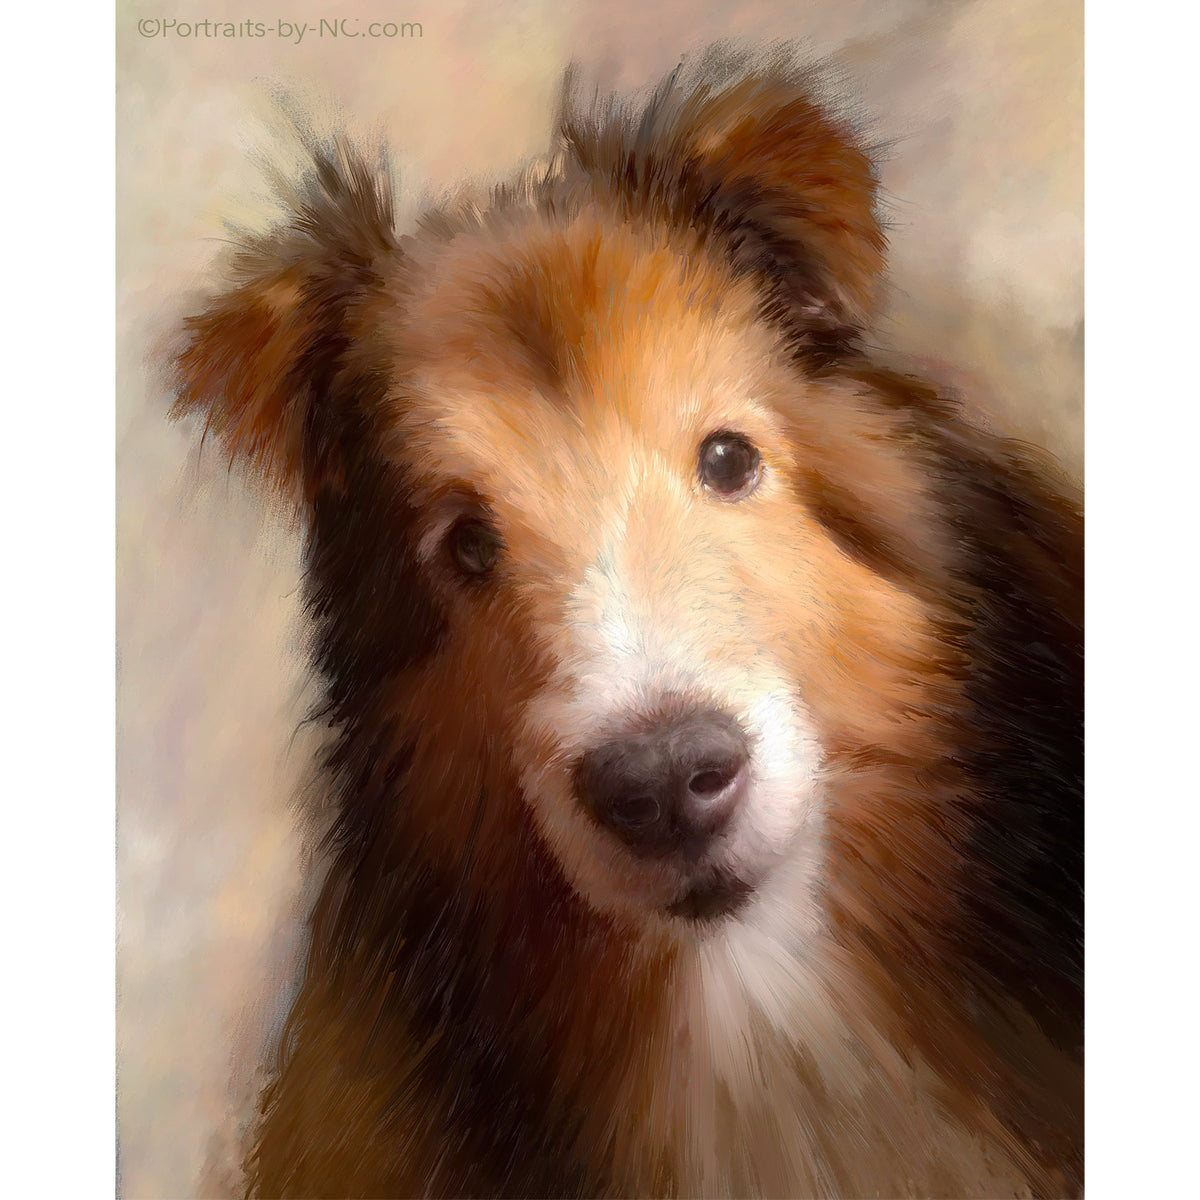 Portrait of a Sheltie 682